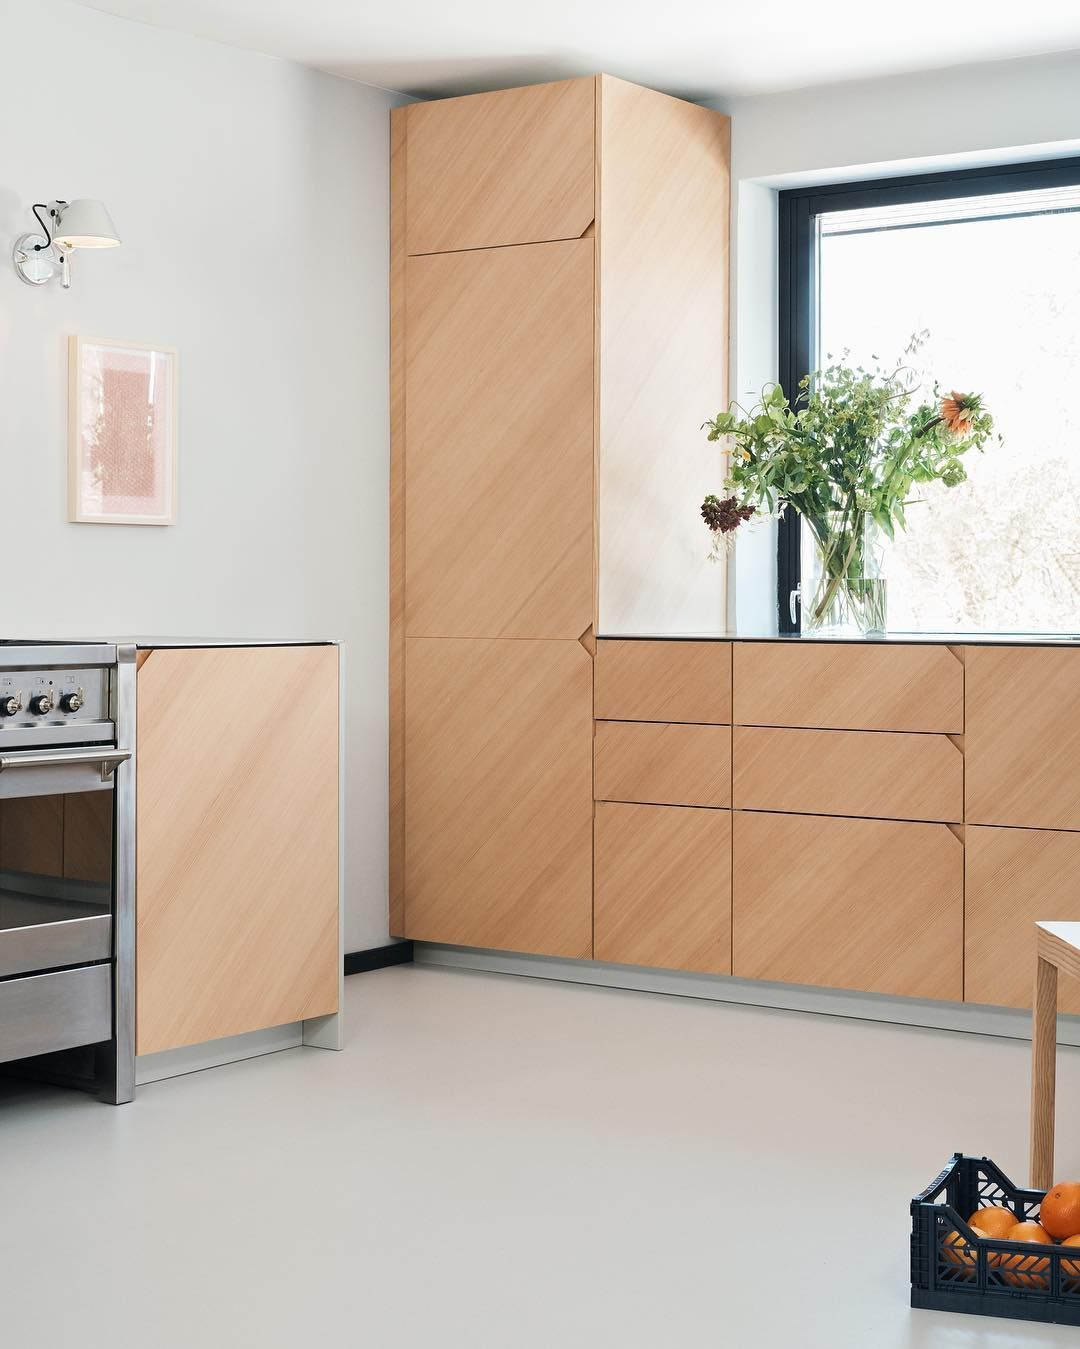 Degree By Cecilie Manz In Oregon Pine And Countertop In Steel The Wood Grain Of The Oregon Pine Is Laid At A 45 Degr Kitchen Design Kitchen Design Images Home